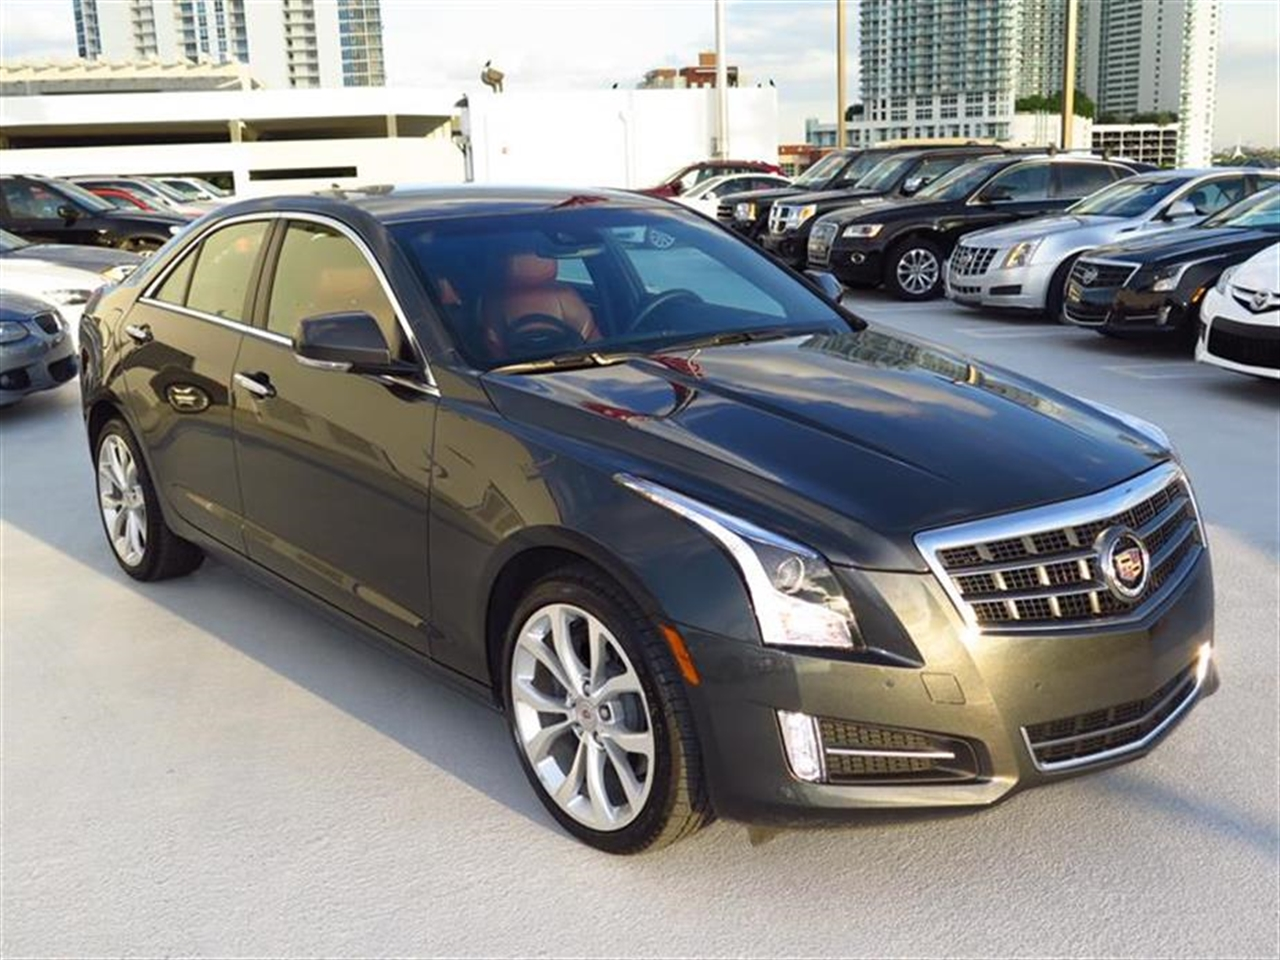 2014 CADILLAC ATS 4dr Sdn 20L Performance AWD 9821 miles Adaptive Remote Start Air filtration s